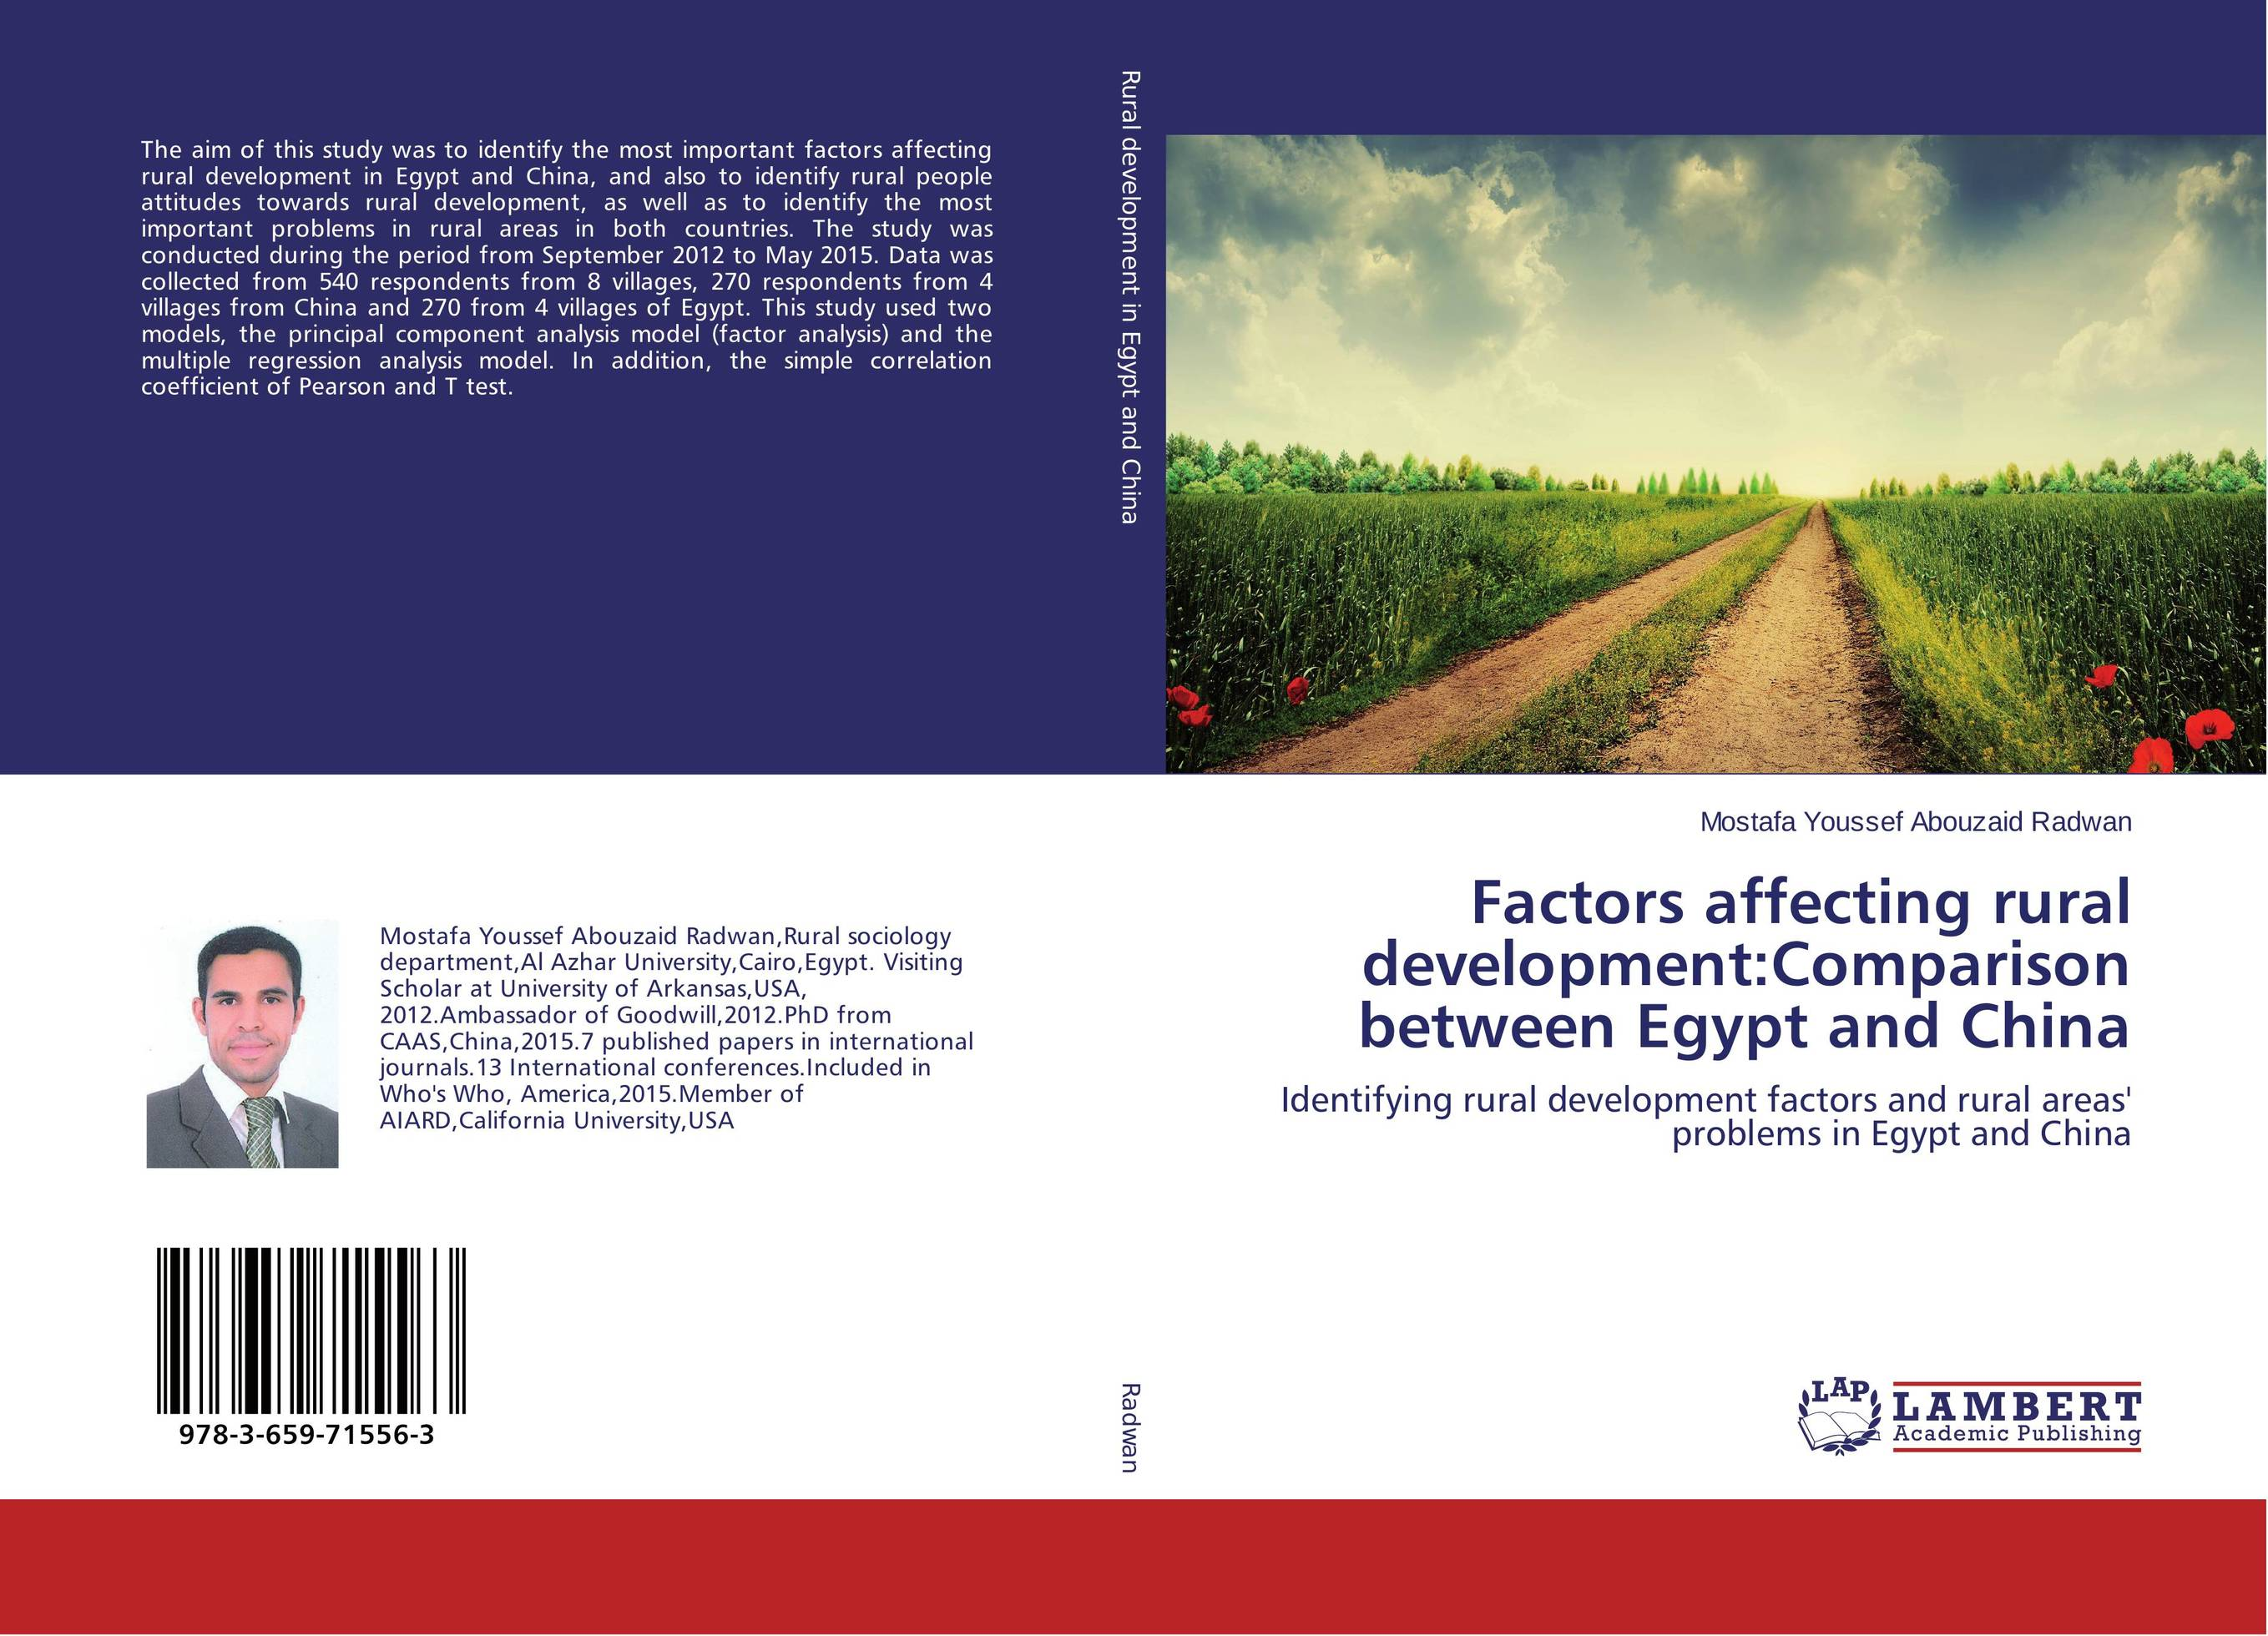 Factors affecting rural development:Comparison between Egypt and China